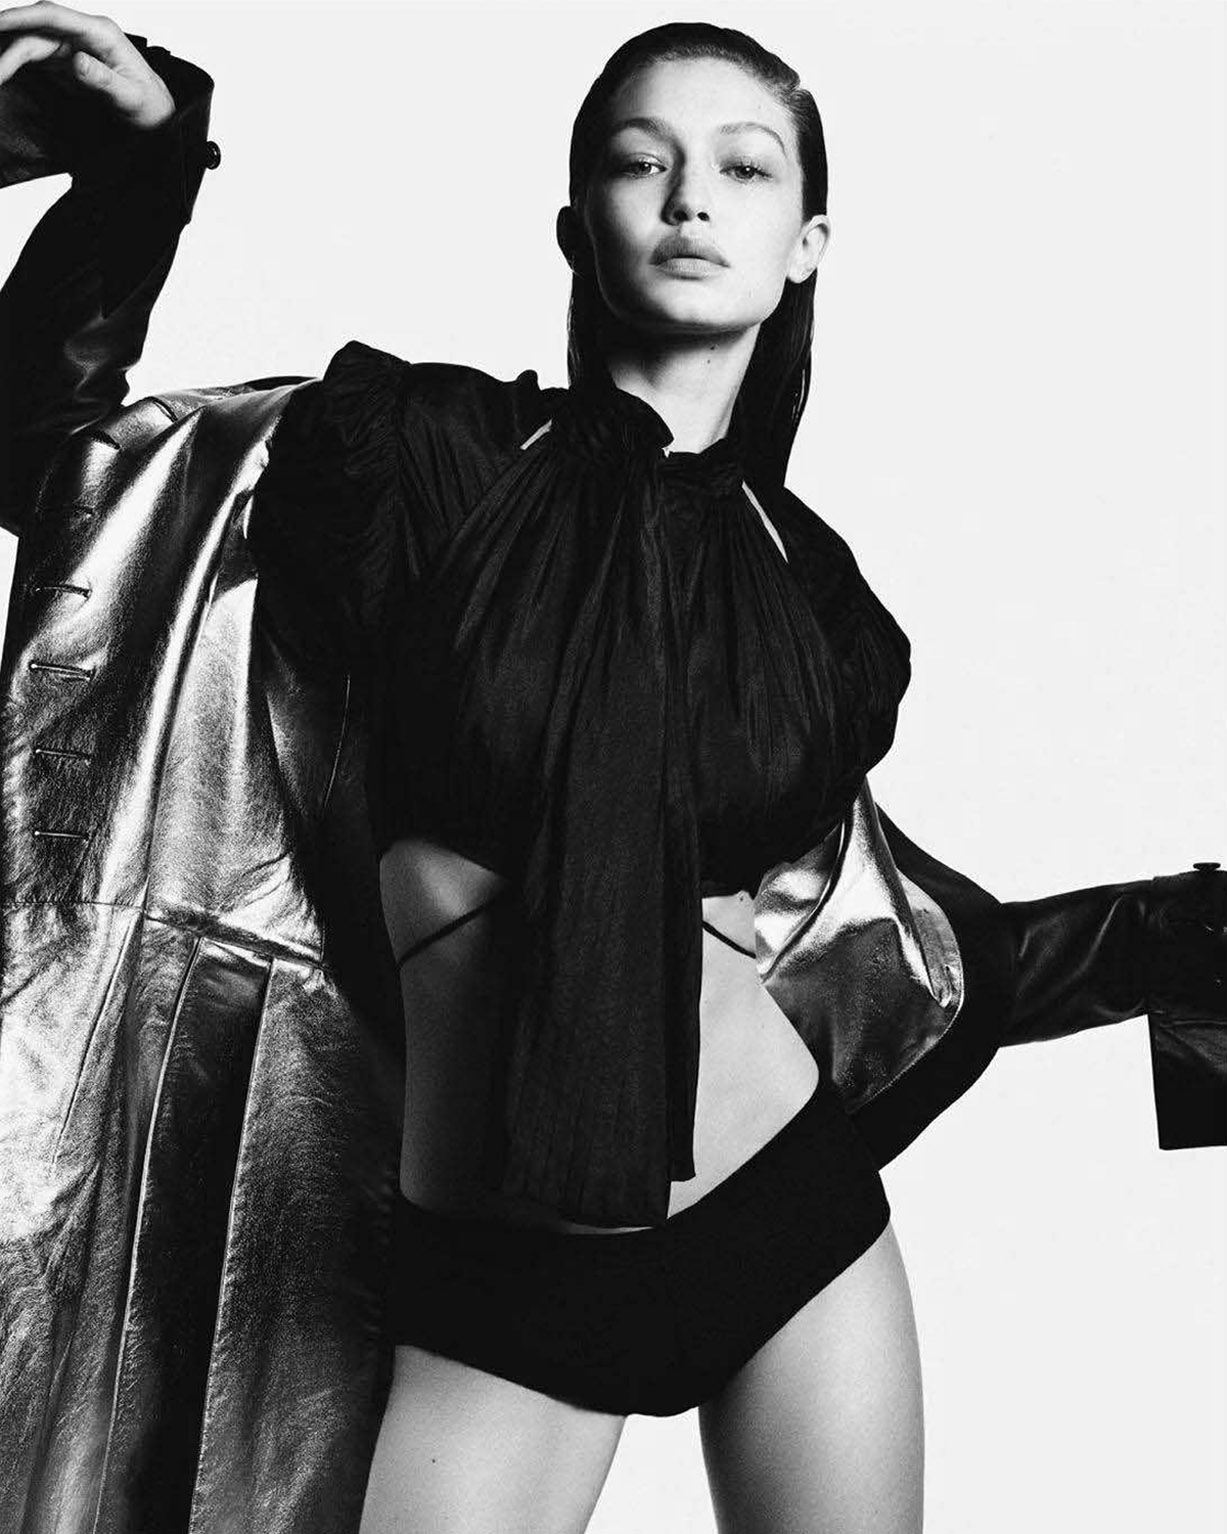 Gigi Rocks / Gigi Hadid by Luigi Murenu and Iango Henzi - Vogue Japan june 2018